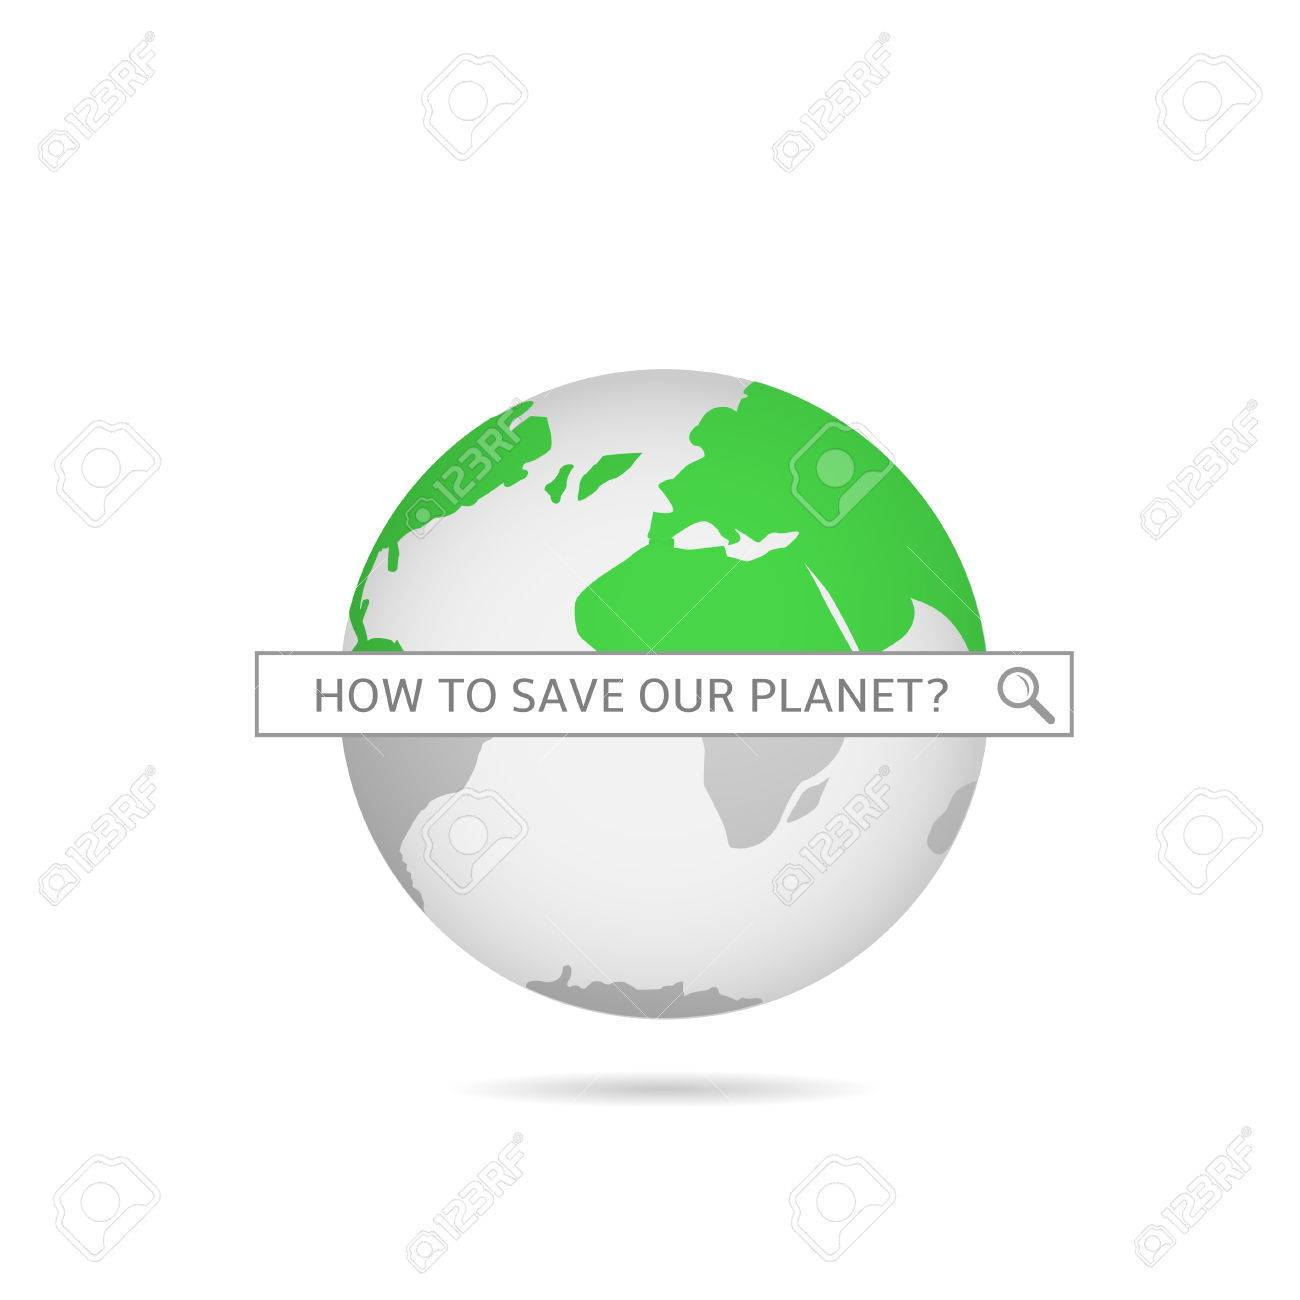 Save Our Planet Green World Map Vector Illustration Royalty Free